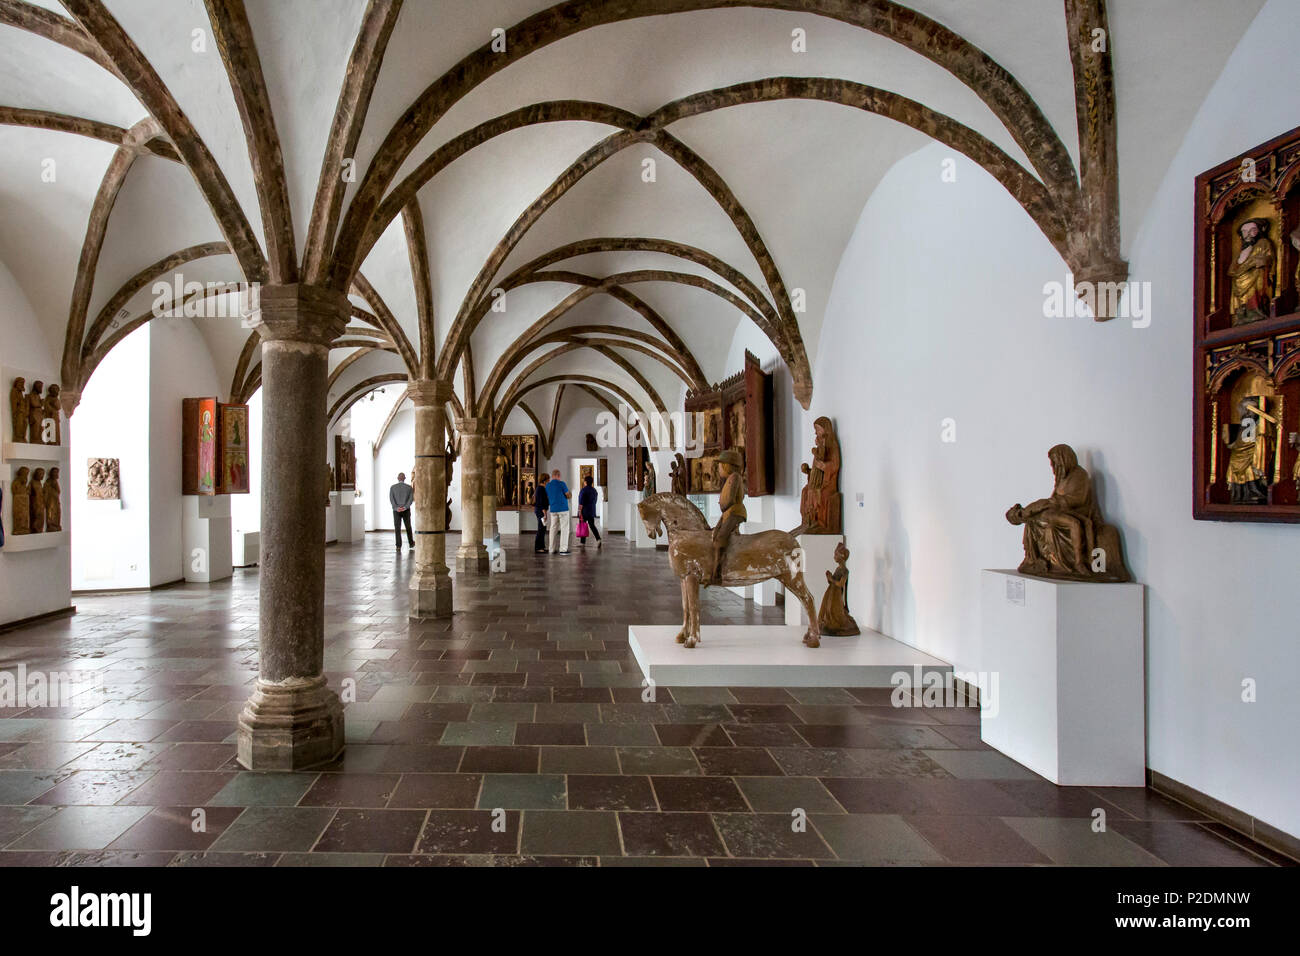 Museum in Gottorf palace, Schlei, Schleswig, Baltic Coast, Schleswig-Holstein, Germany - Stock Image